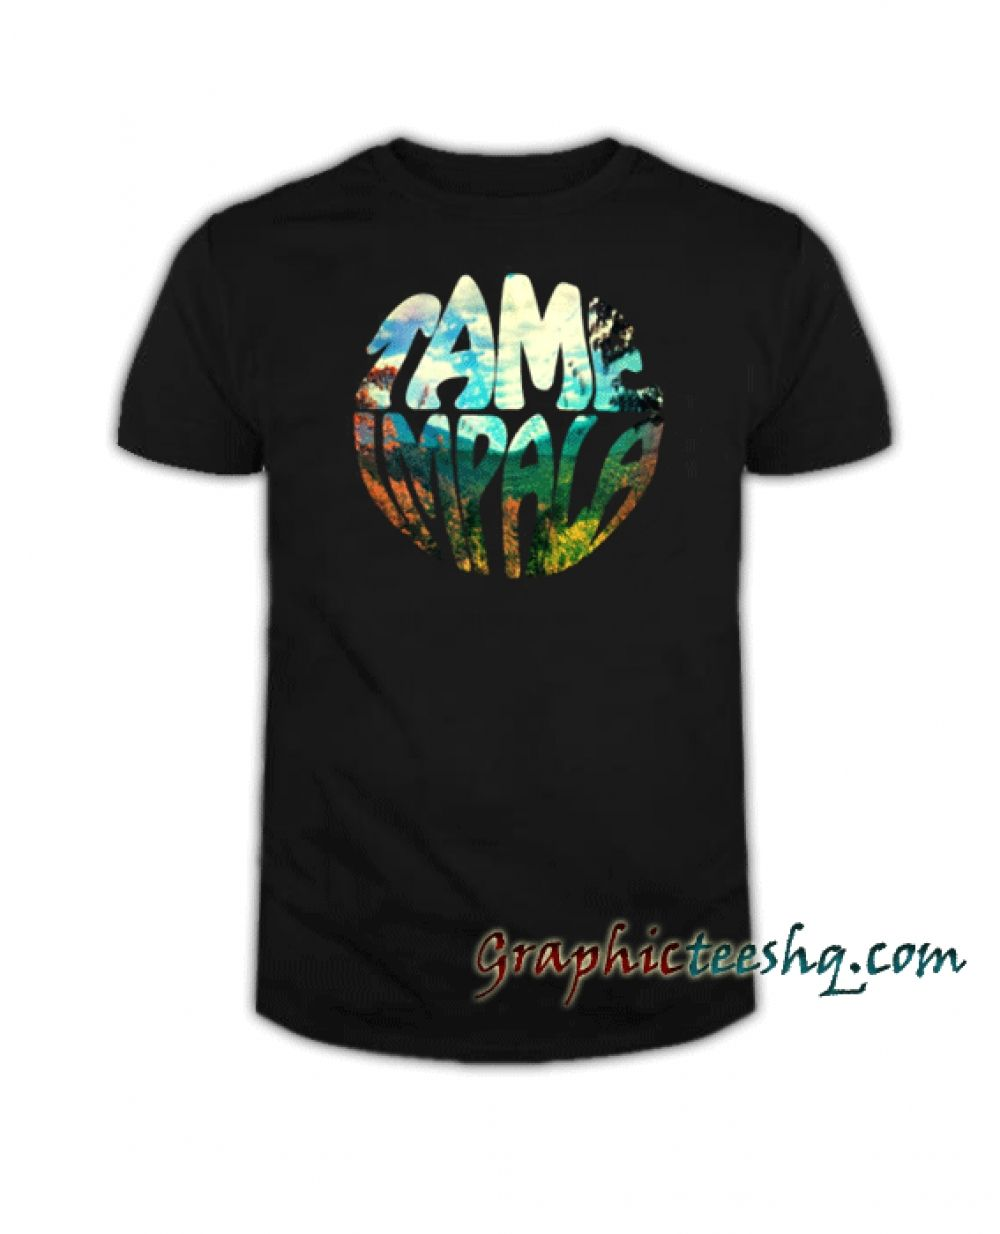 697ea8f46c31 Tame Impala Innerspeaker Tee Shirt Price: 13.50 #style #fashion #tshirts # tee #tshirtdesign#instafashion #black #cute #art #amazing#funny #webstagram  #lol ...